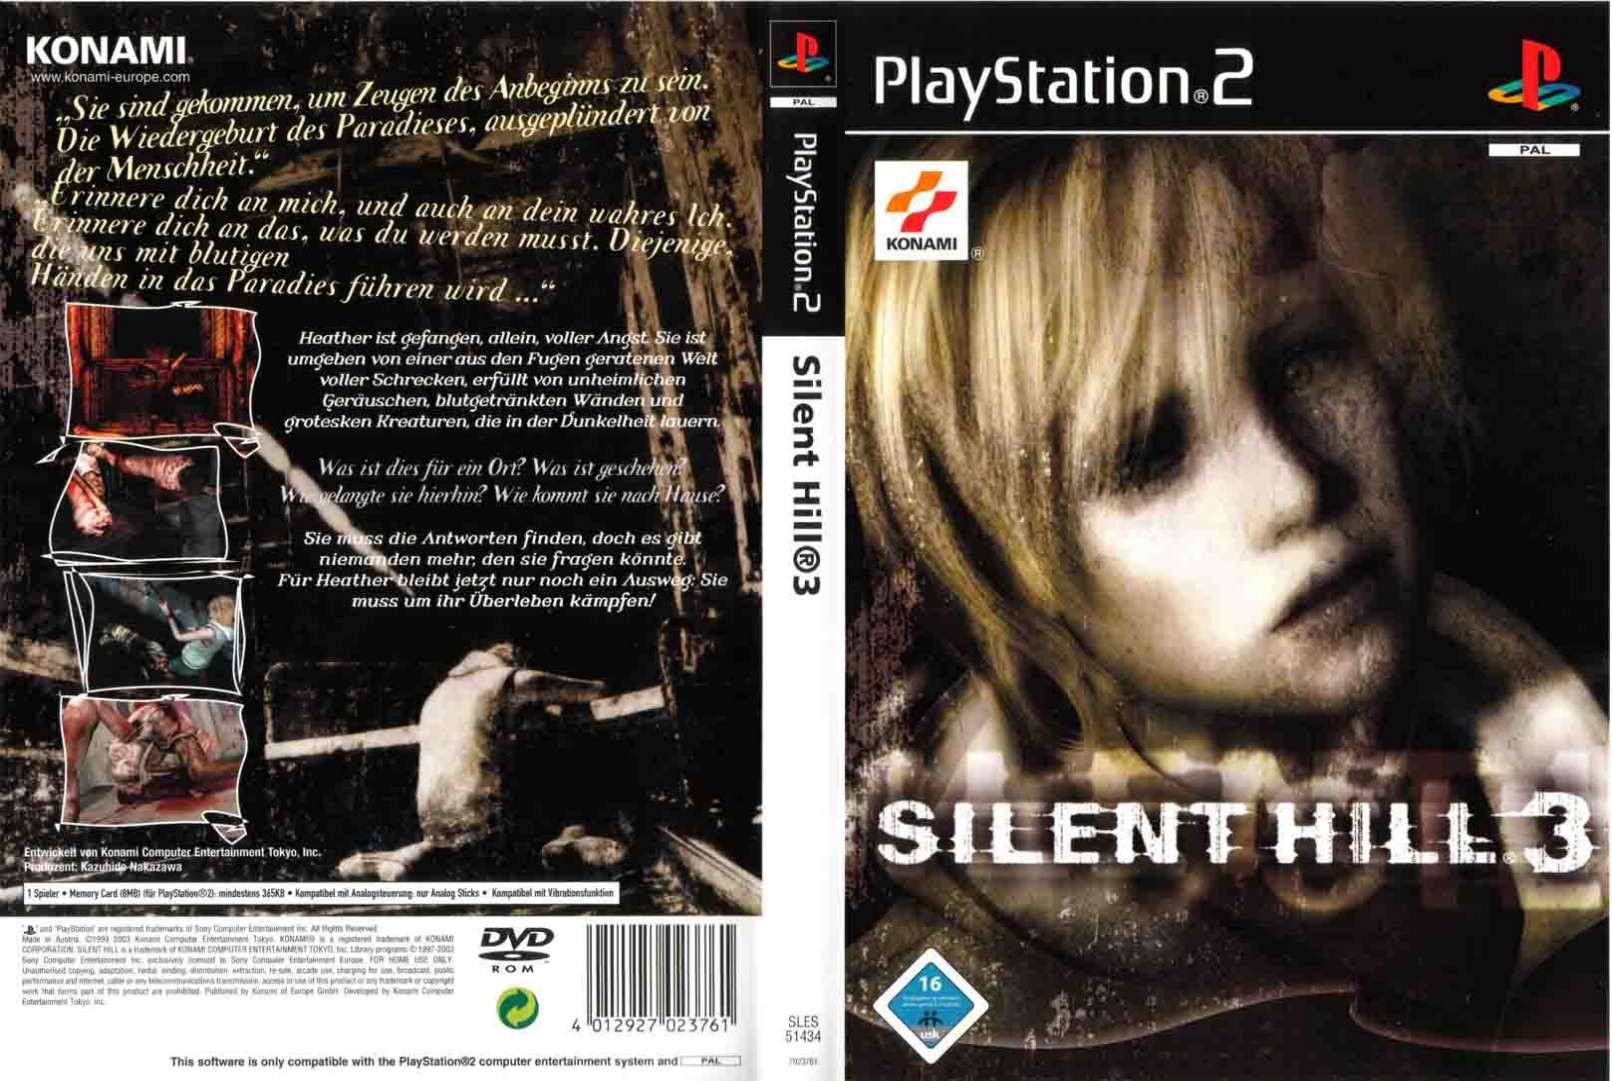 Silent Hill 3 Pal De Full Playstation 2 Covers Cover Century